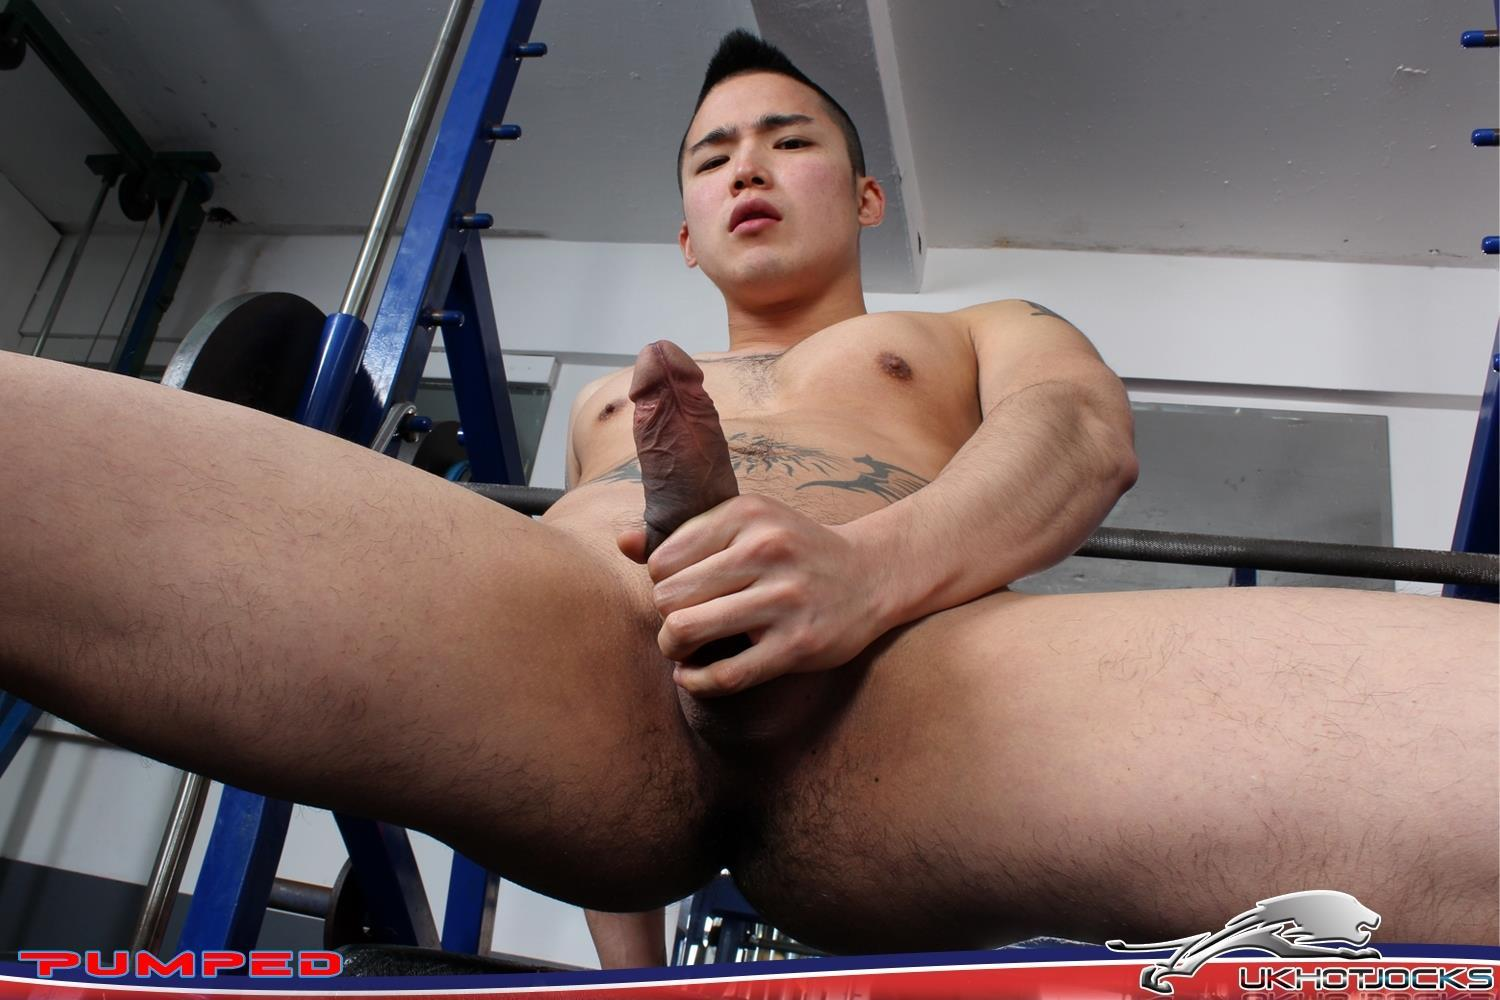 UK-Hot-Jocks-Kayden-Gray-and-Yoshi-Kawasaki-Big-Asian-Cock-Getting-Fucked-In-The-Ass-Amateur-Gay-Porn-06 Asian With A Big Uncut Cock Getting Fucked By Kayden Gray